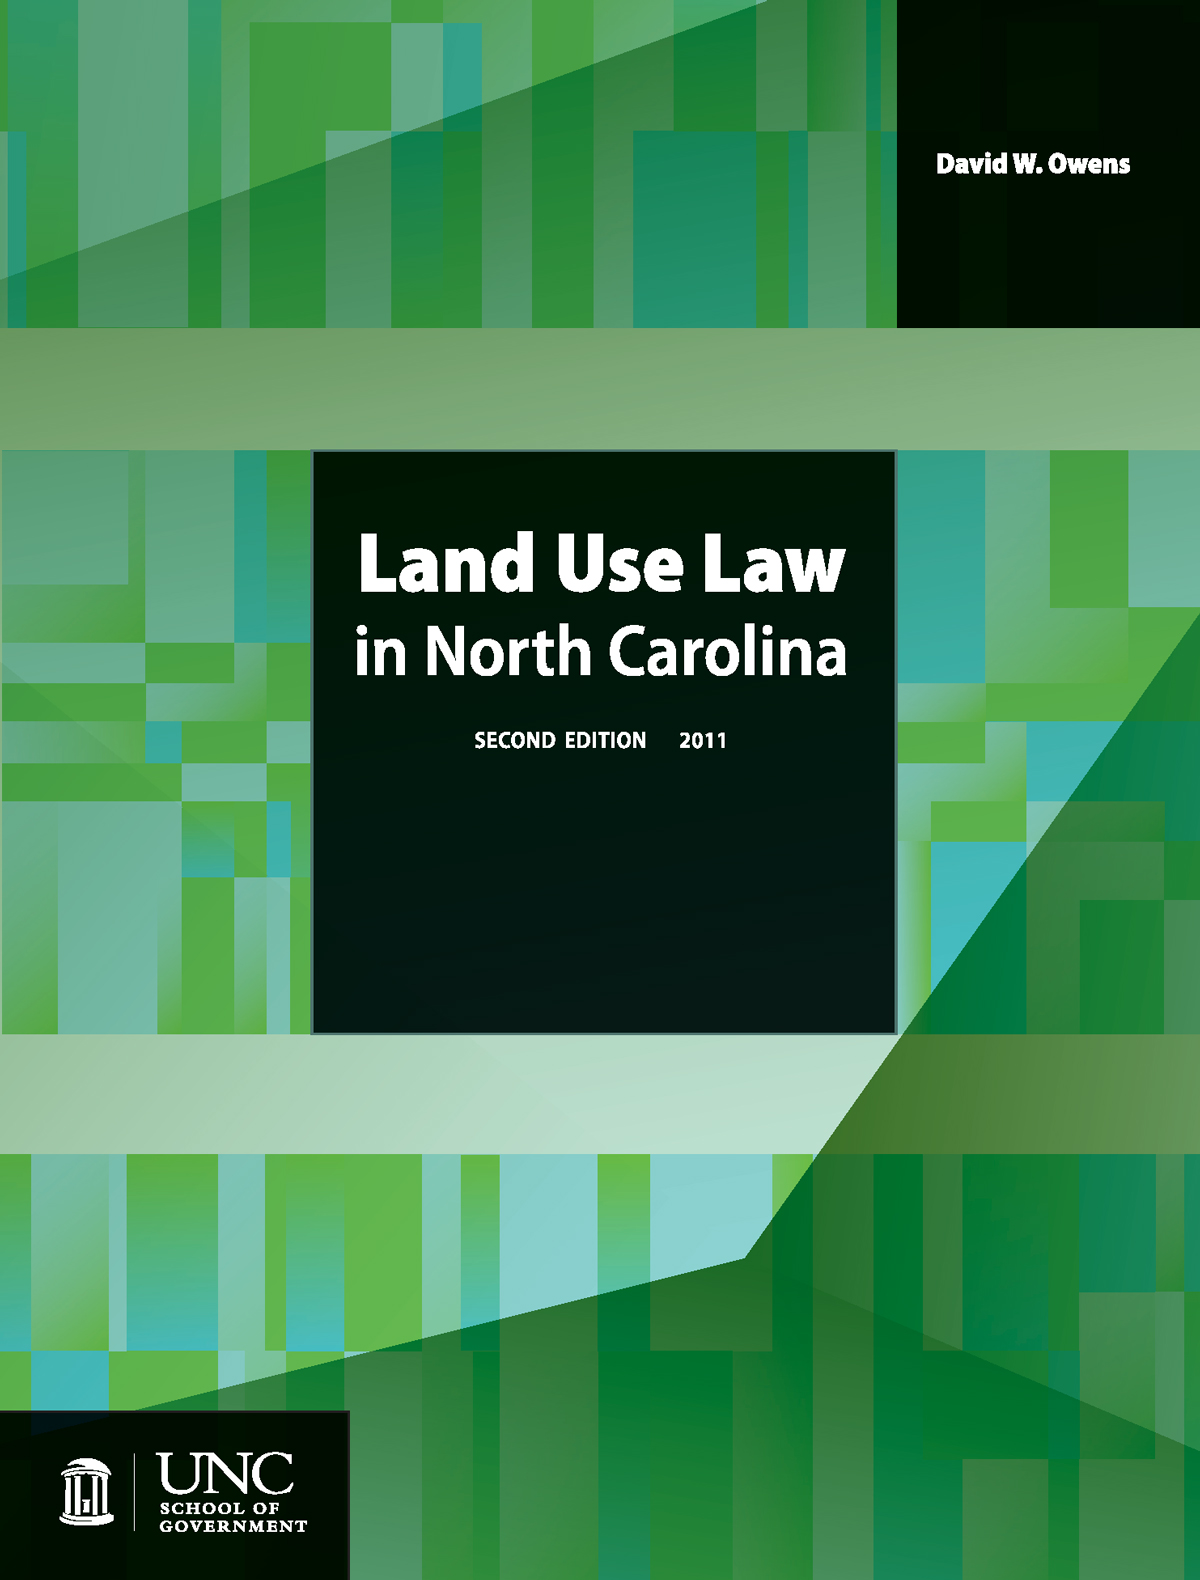 Cover image for Land Use Law in North Carolina, Second Edition